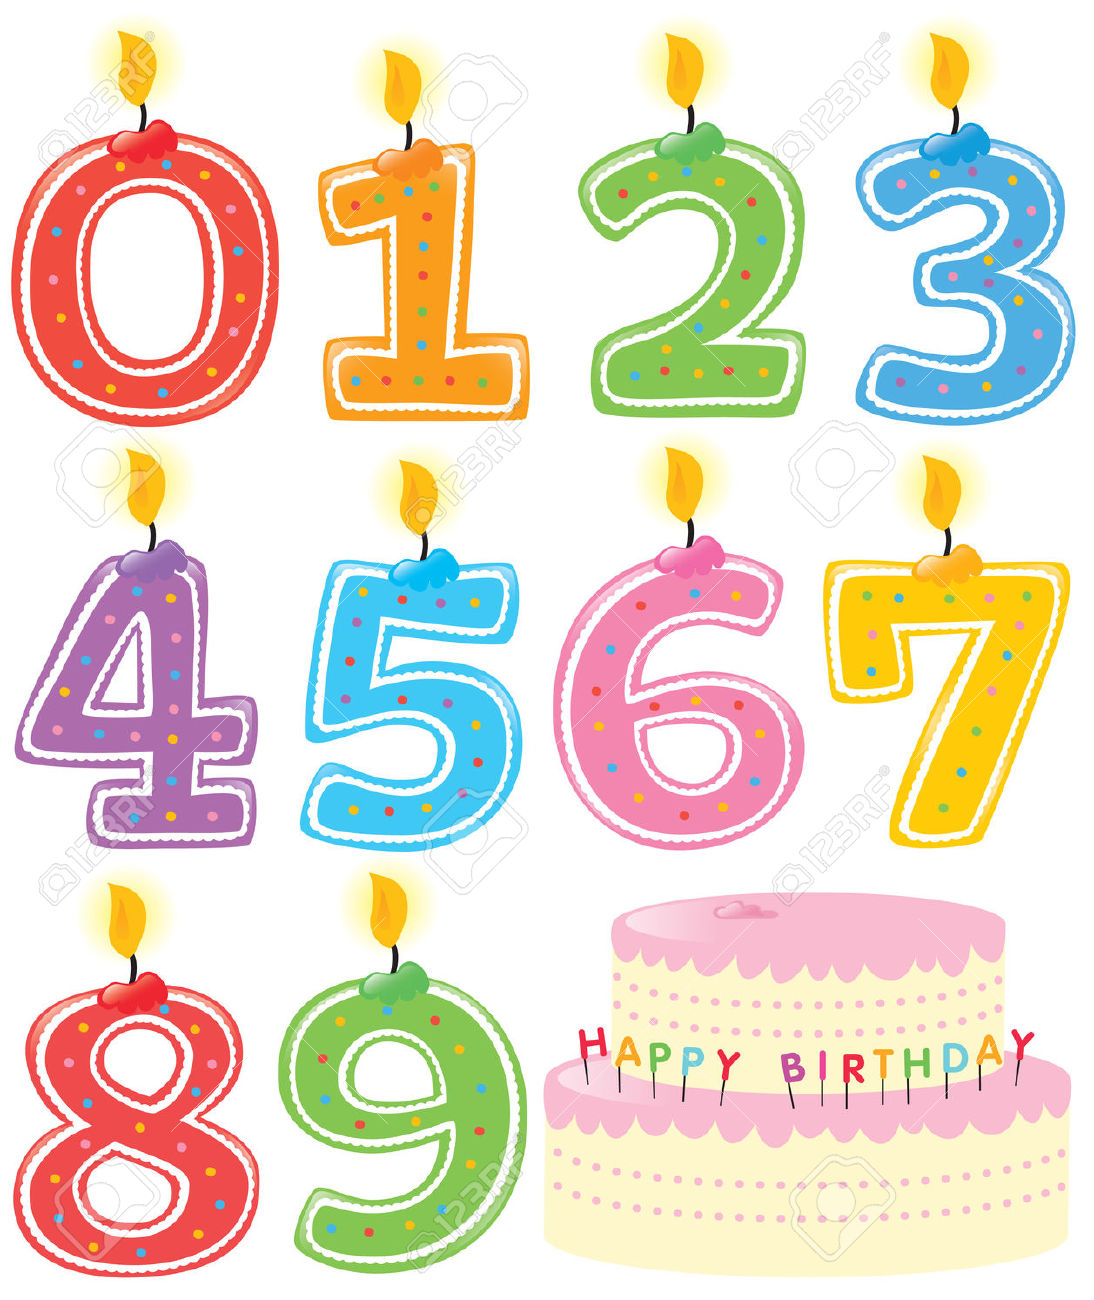 Numbered Birthday Candles And Cake Royalty Free Cliparts, Vectors.